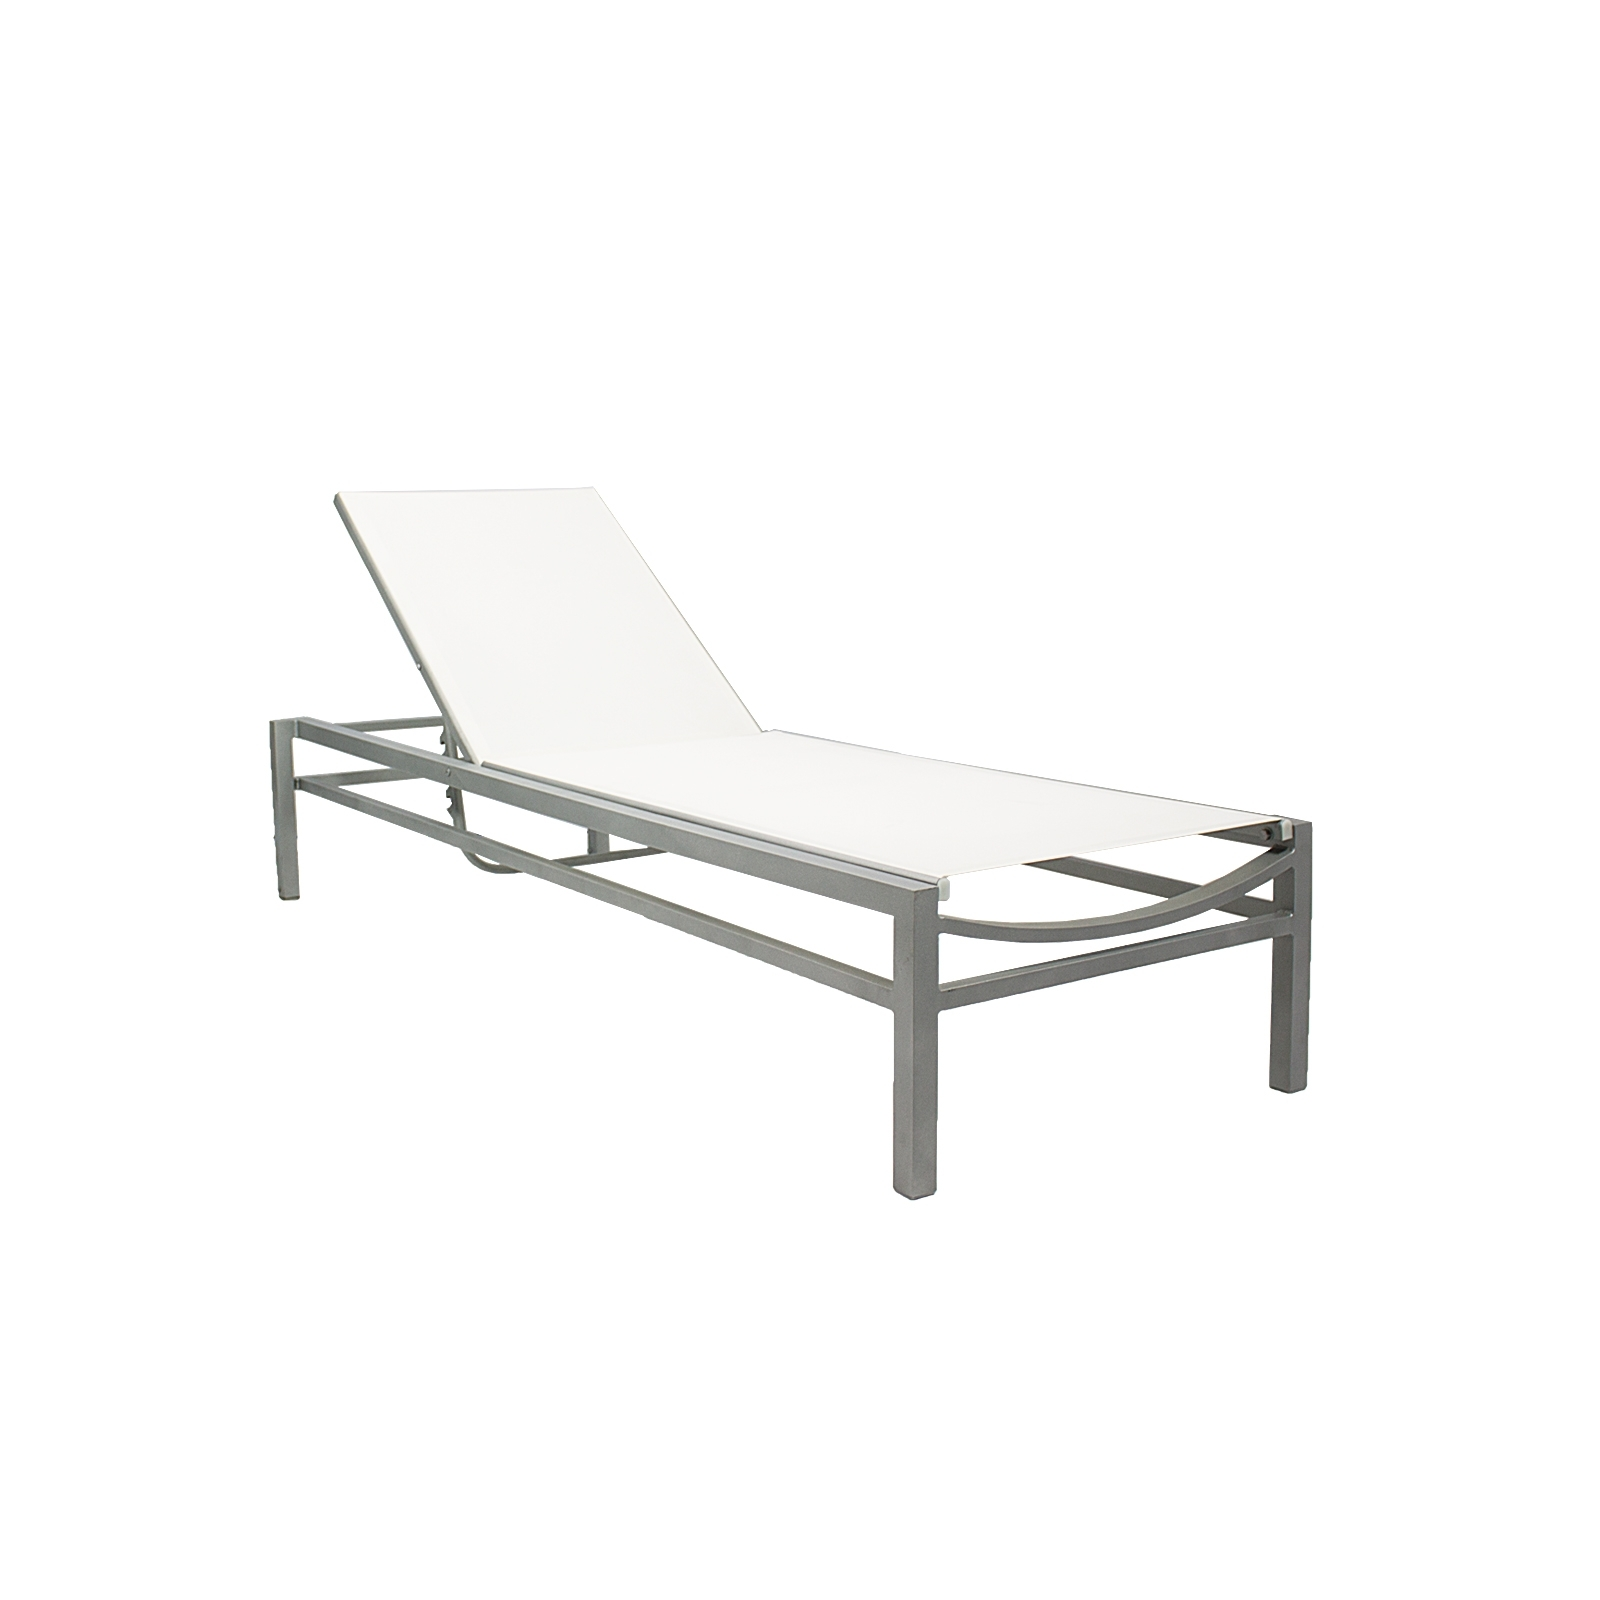 Preferred Innovative Aluminum Chaise Lounge With Outdoor Chaise Lounges Inside Contemporary Outdoor Chaise Lounge Chairs (View 14 of 15)